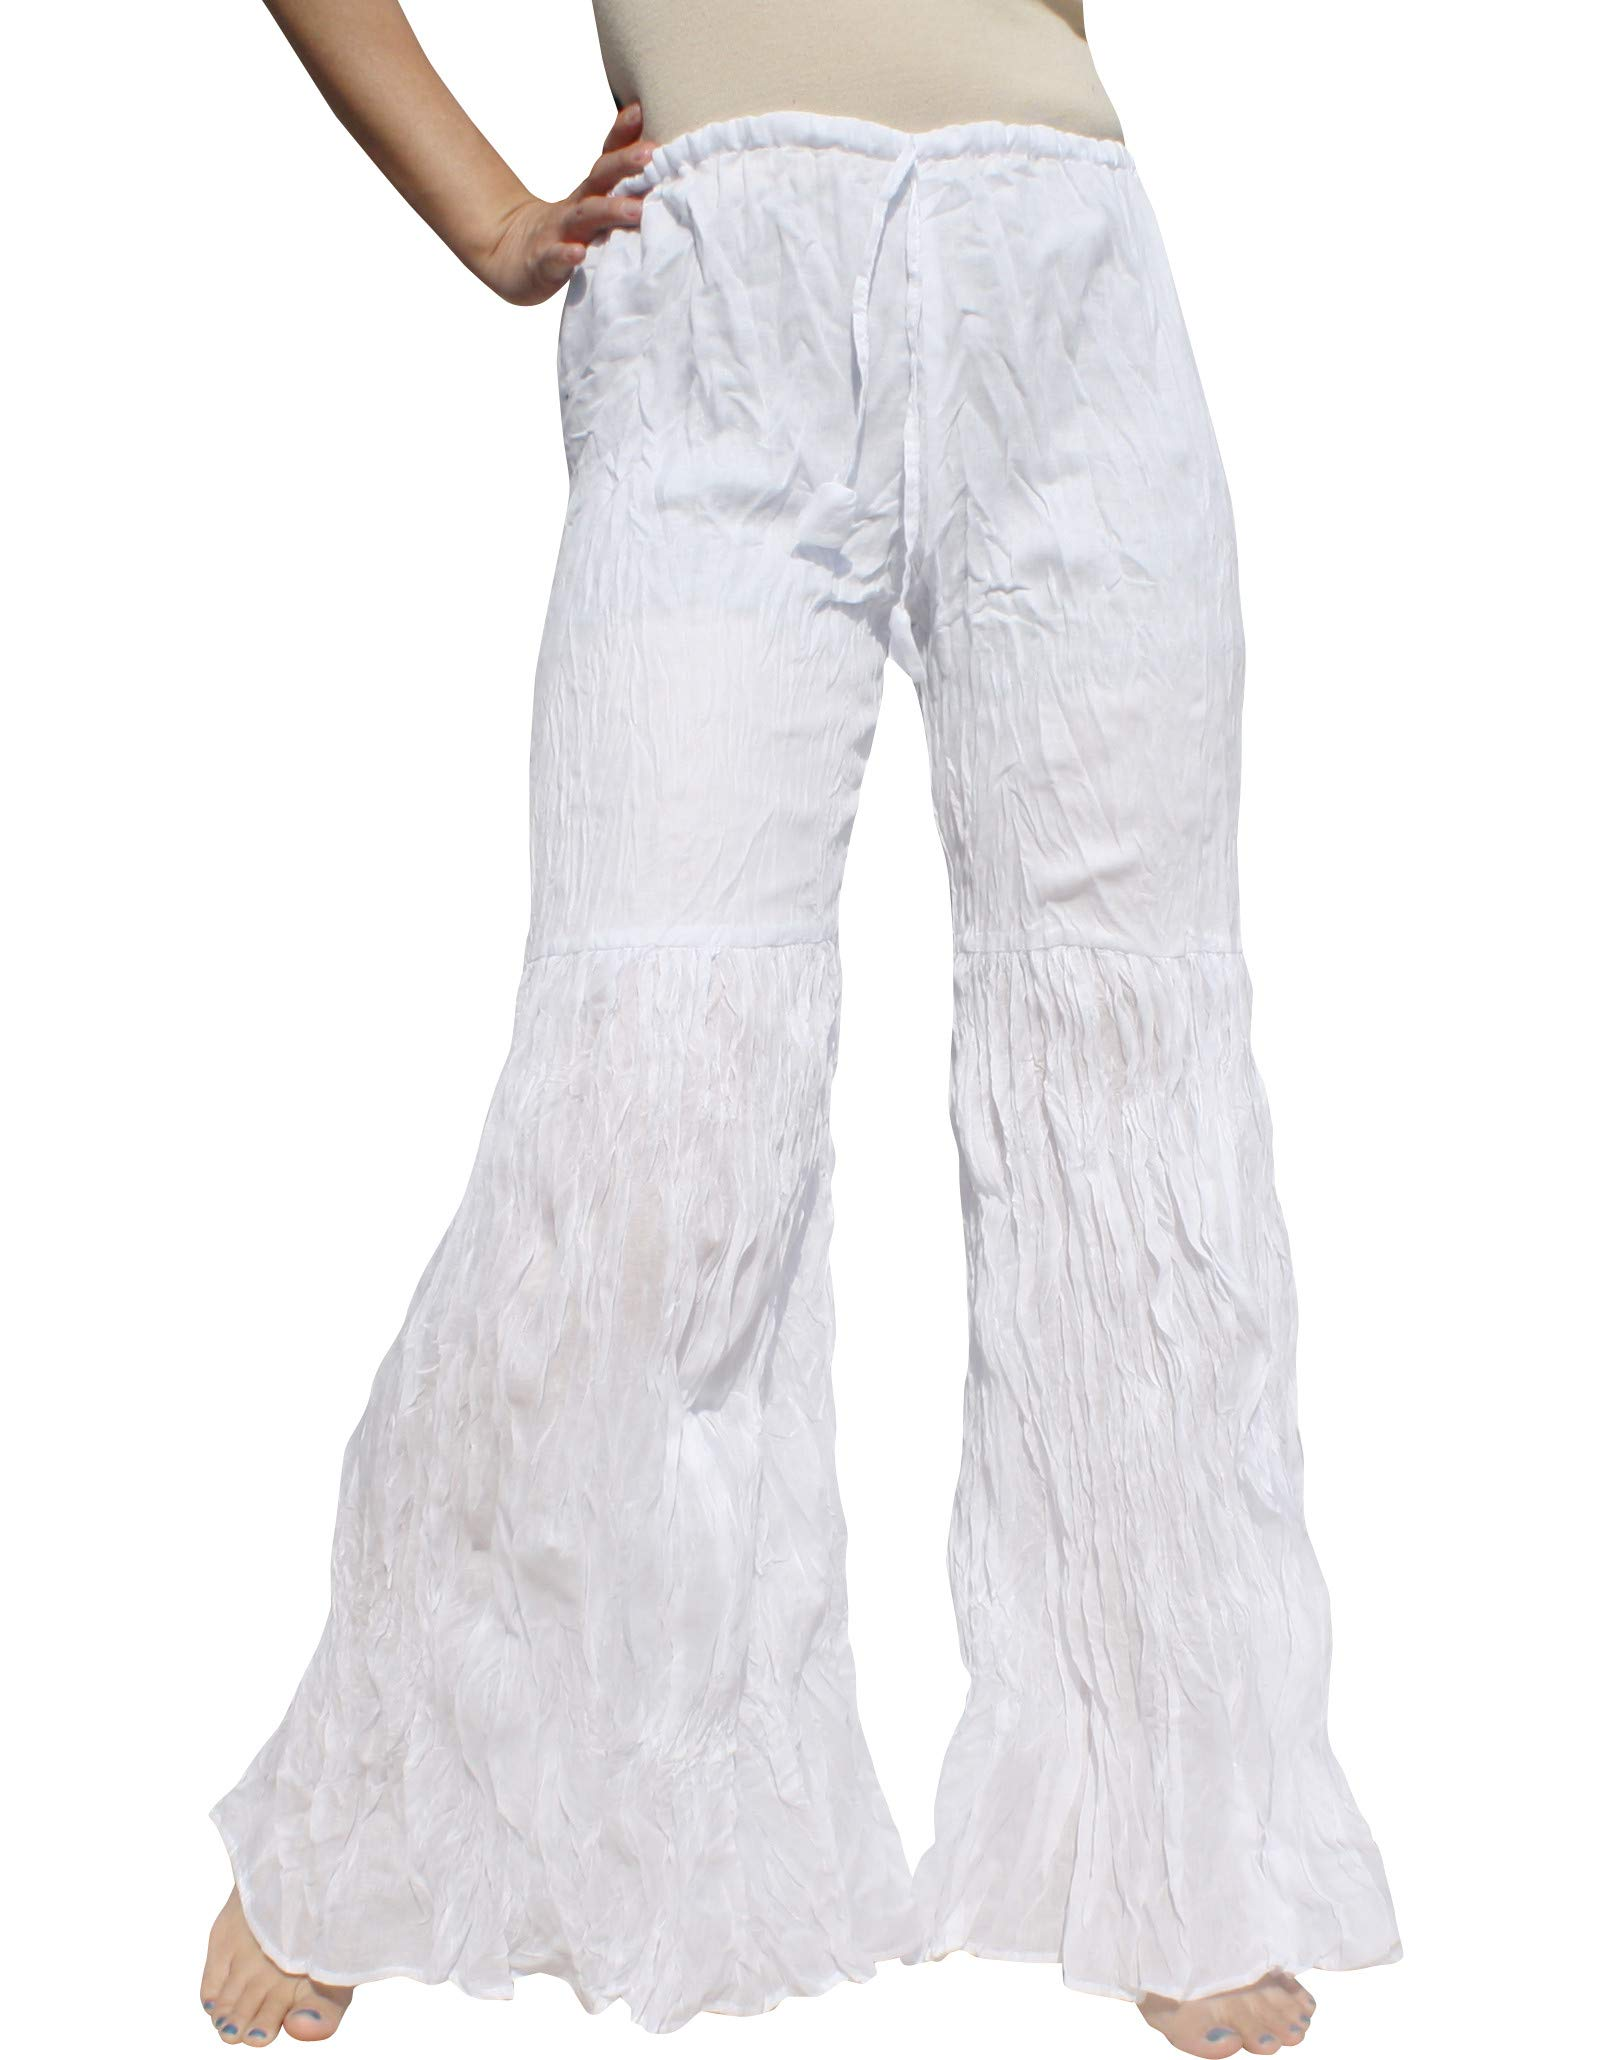 Raan Pah Muang Brand Wide Lower Leg Flared Light Cotton Stepped Pants Baggy Cut, Large, White by Raan Pah Muang